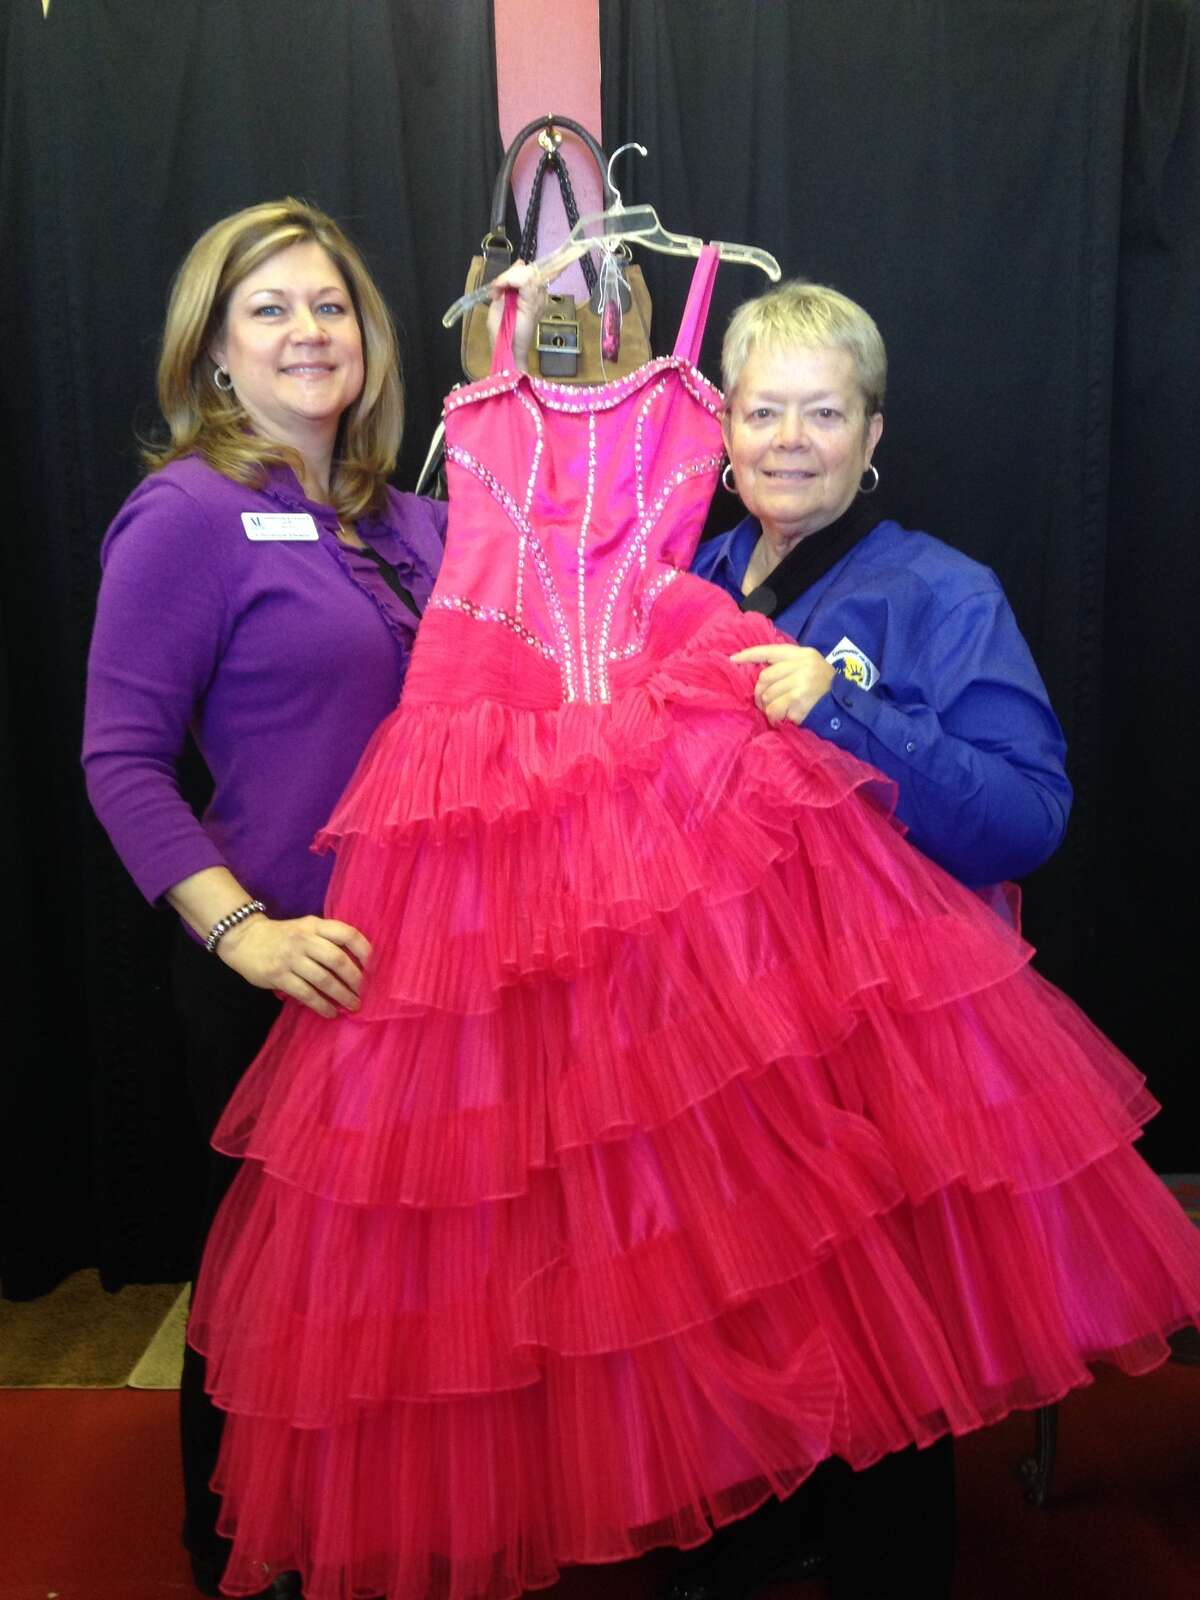 Chairman Ann Hammond and Vice Chairman Christina Deane display one of the many prom dresses that will be made available to high school senior women referred to the program through their respective schools.